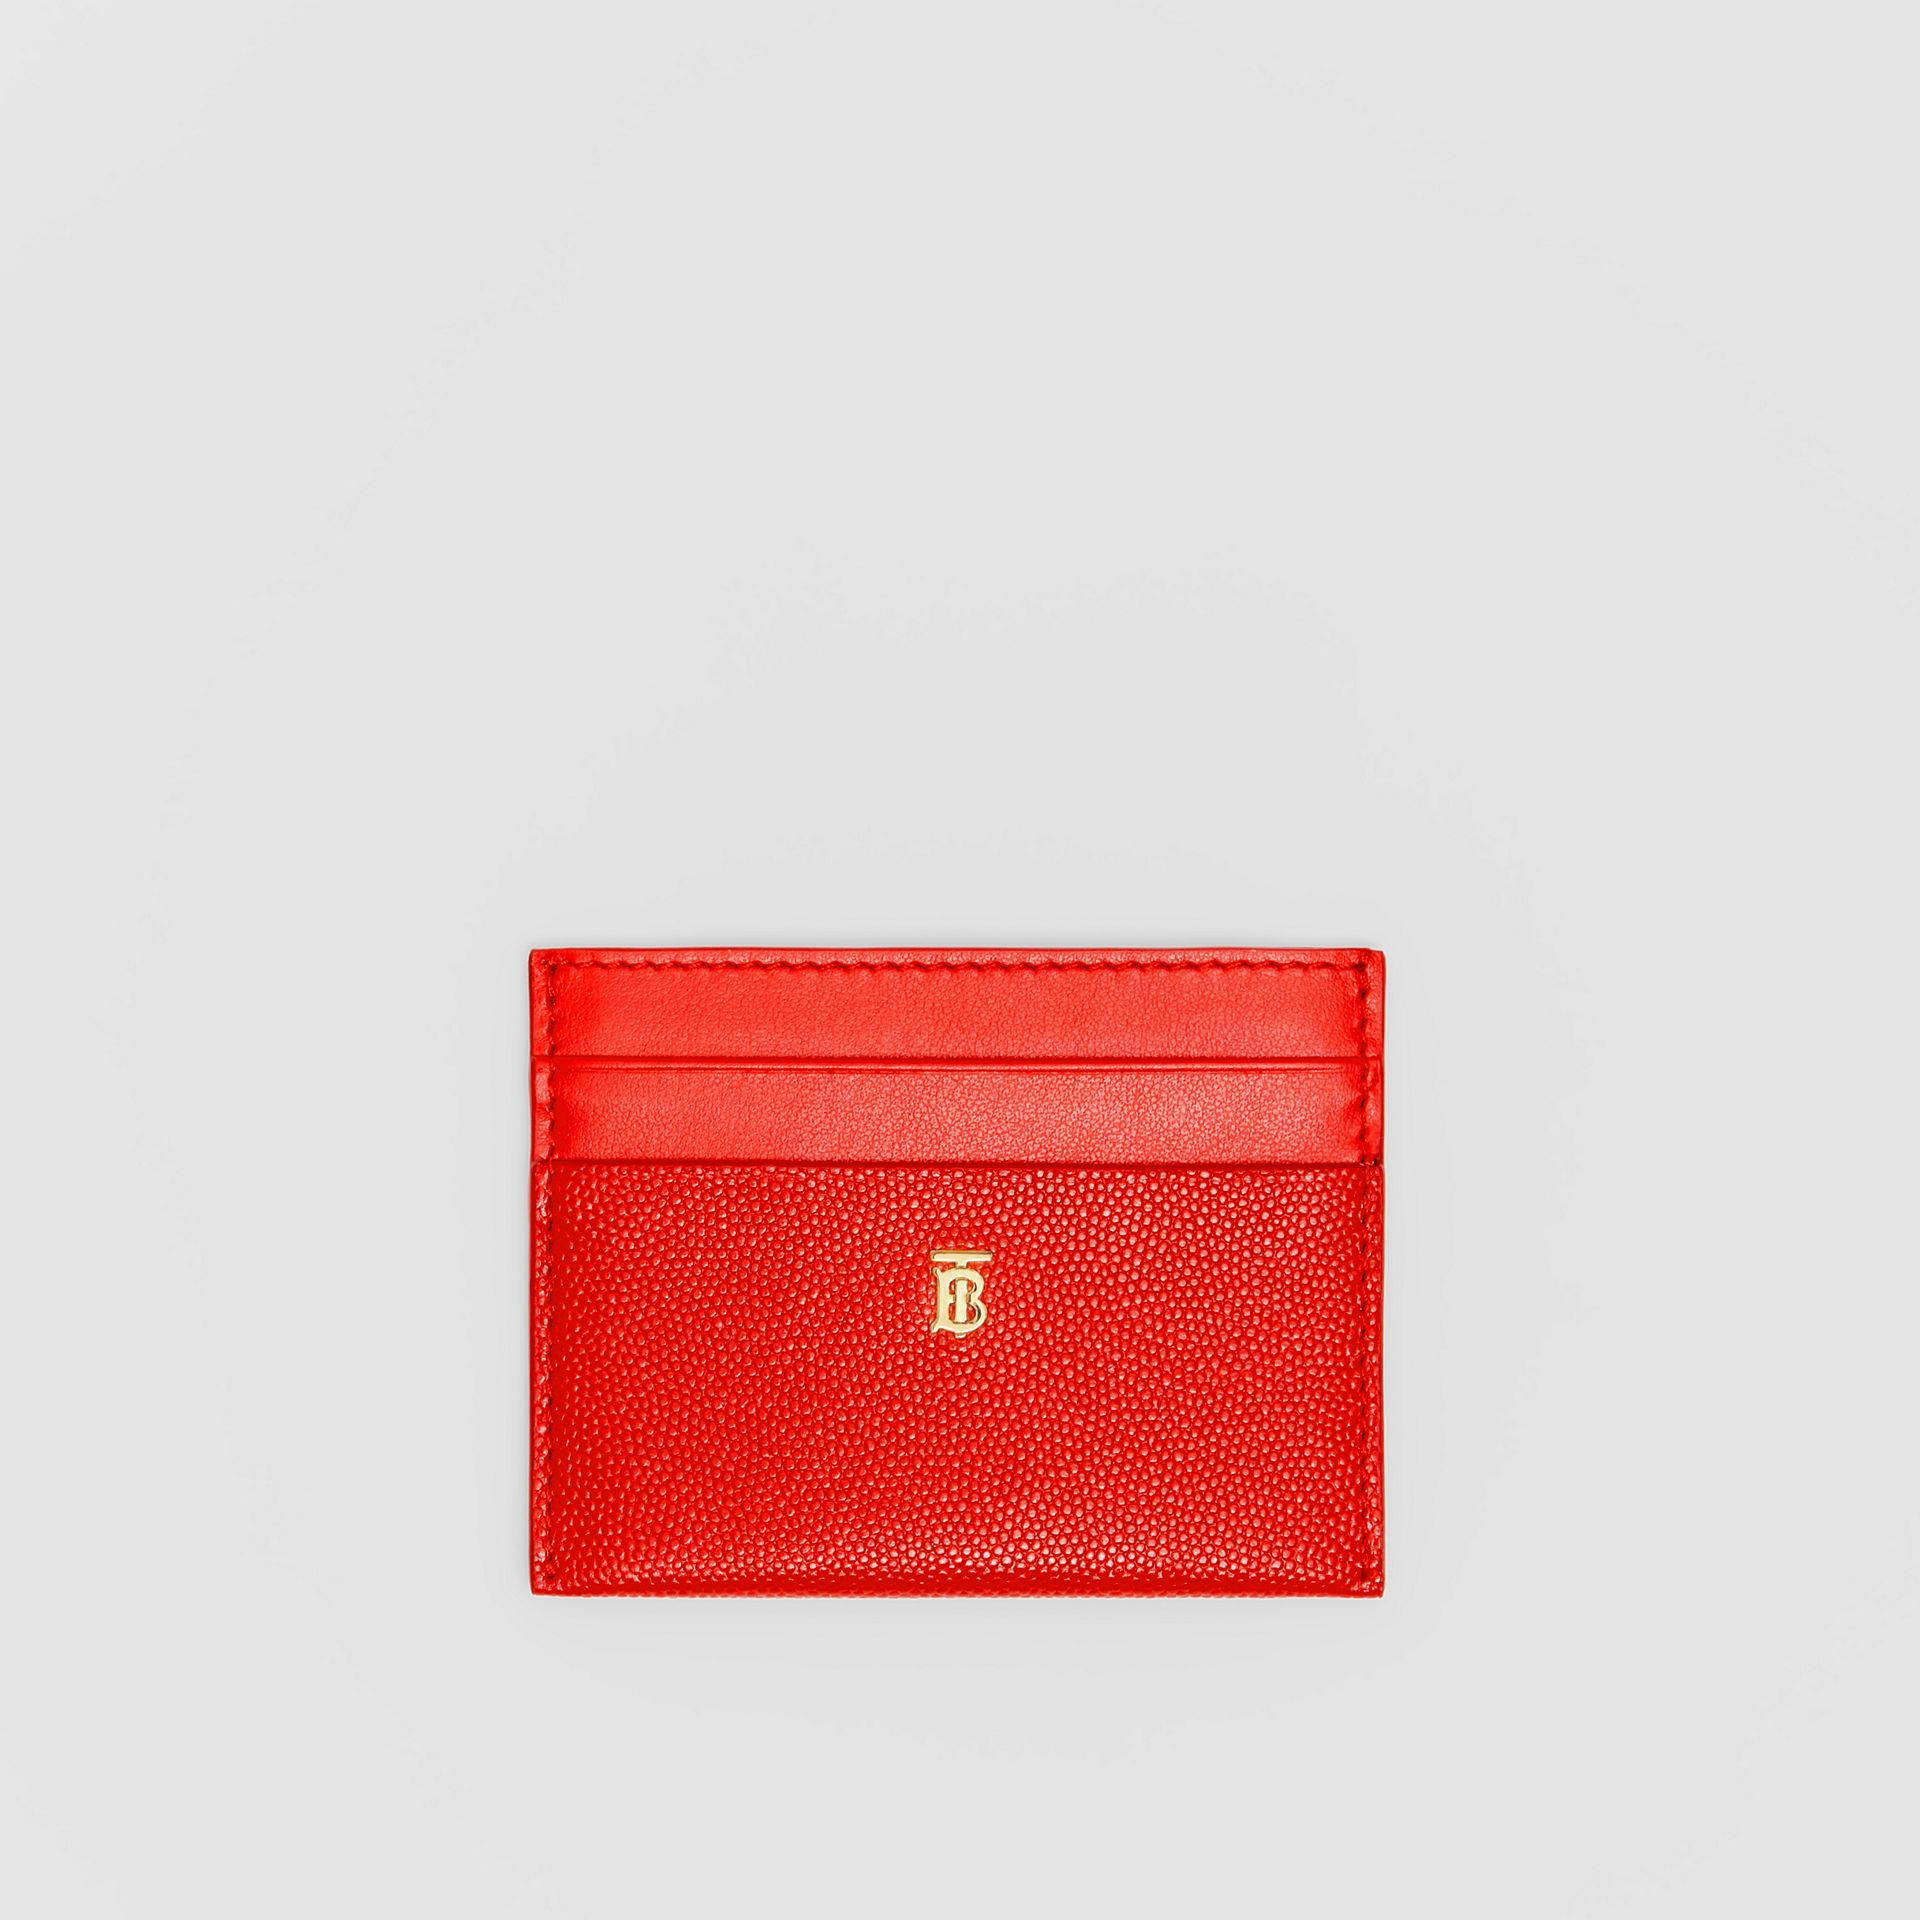 Monogram Motif Leather Card Case in Bright Red - Women | Burberry Australia - gallery image 0